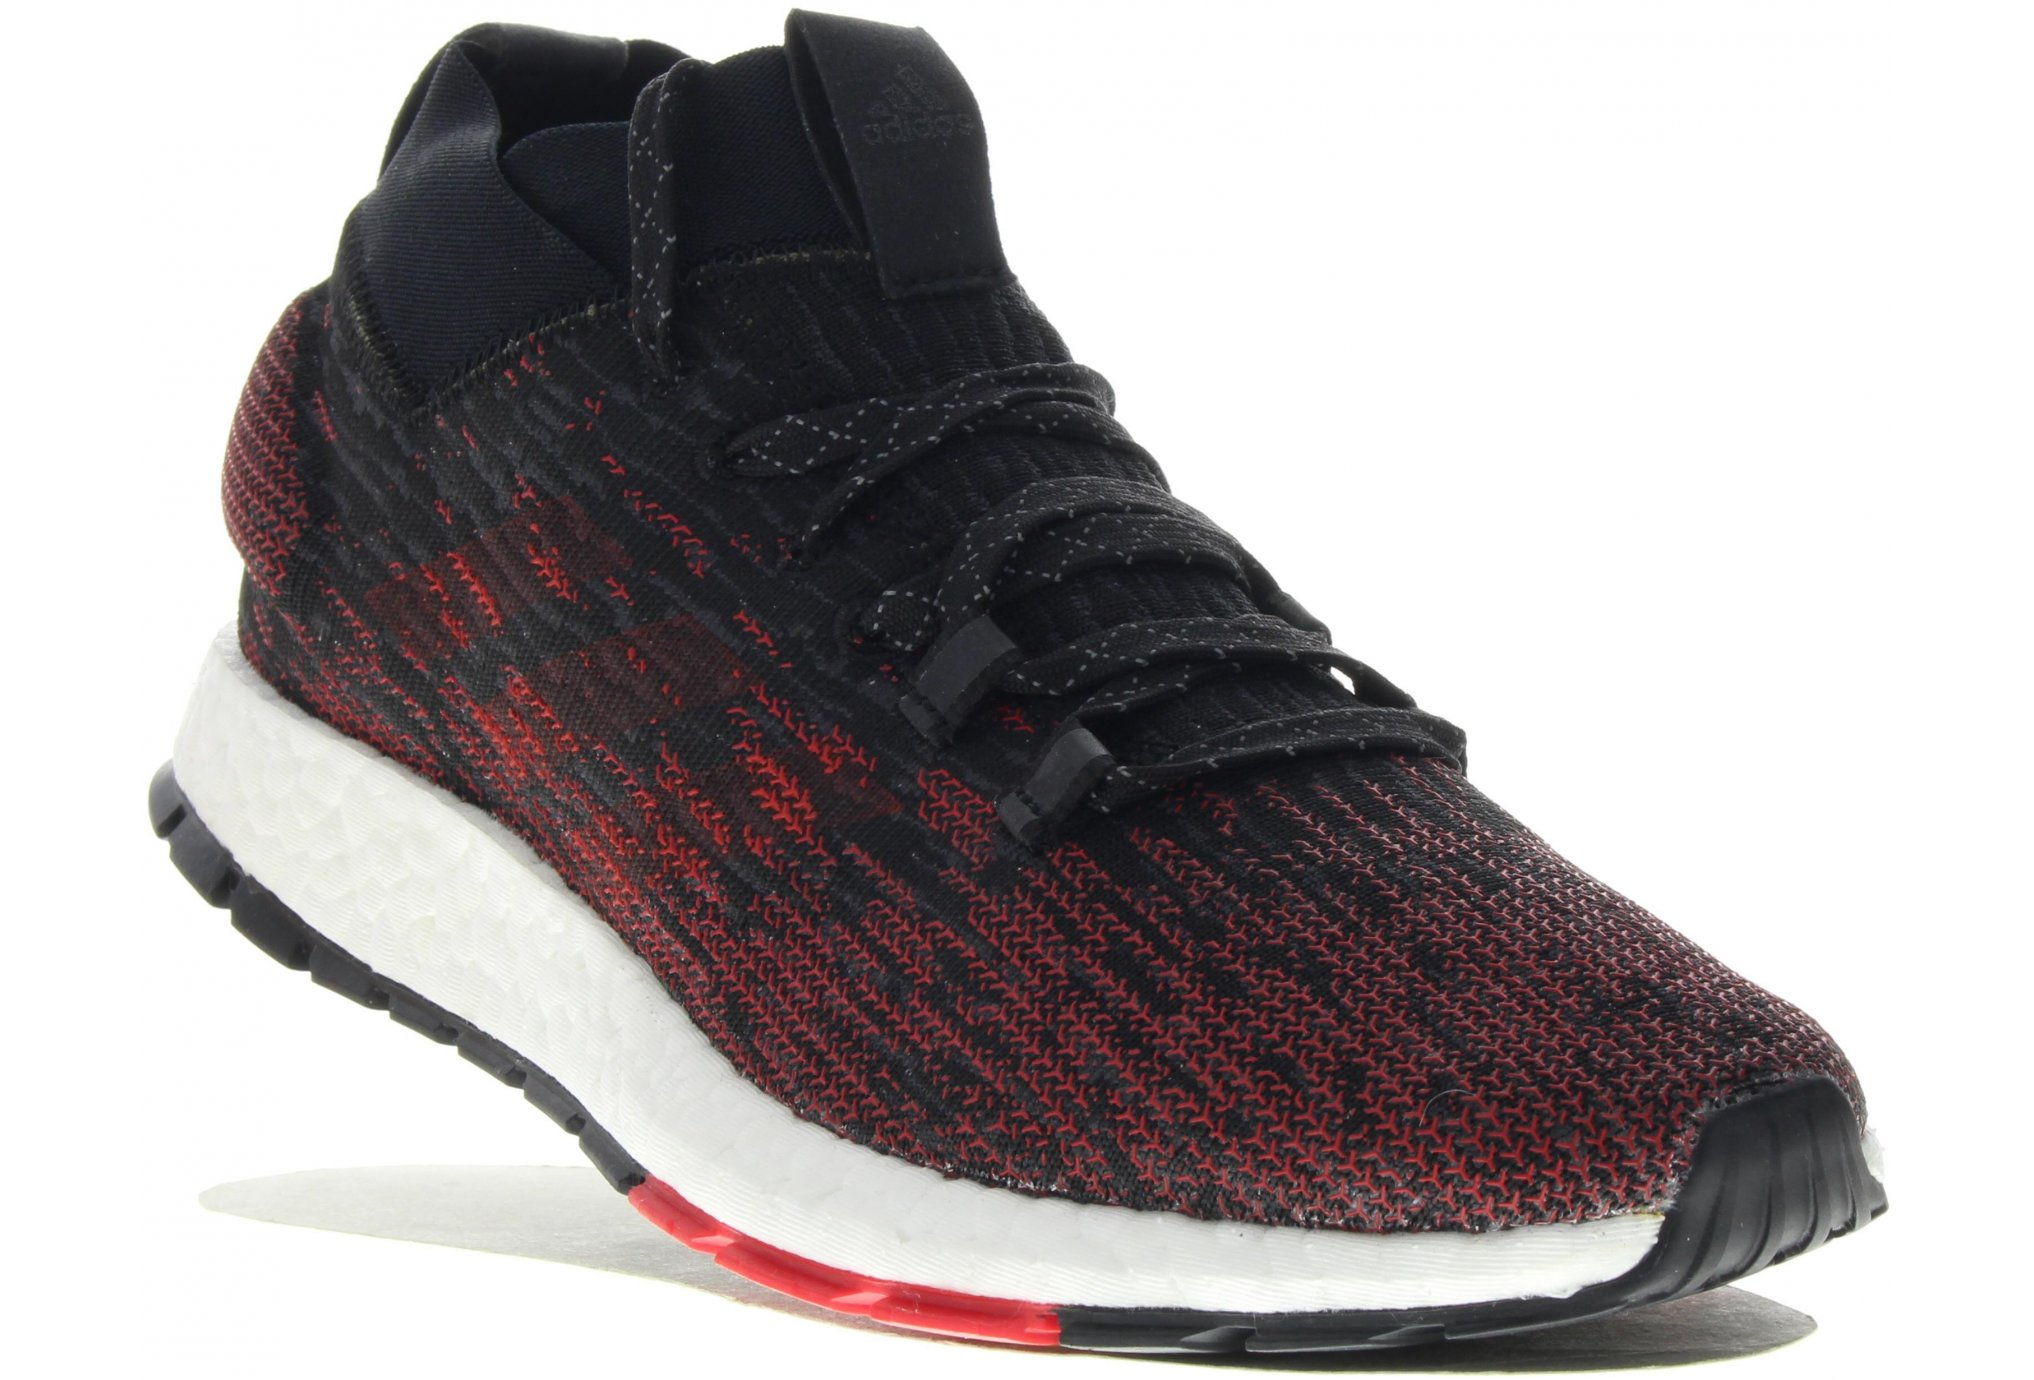 Adidas Pureboost rbl m chaussures homme